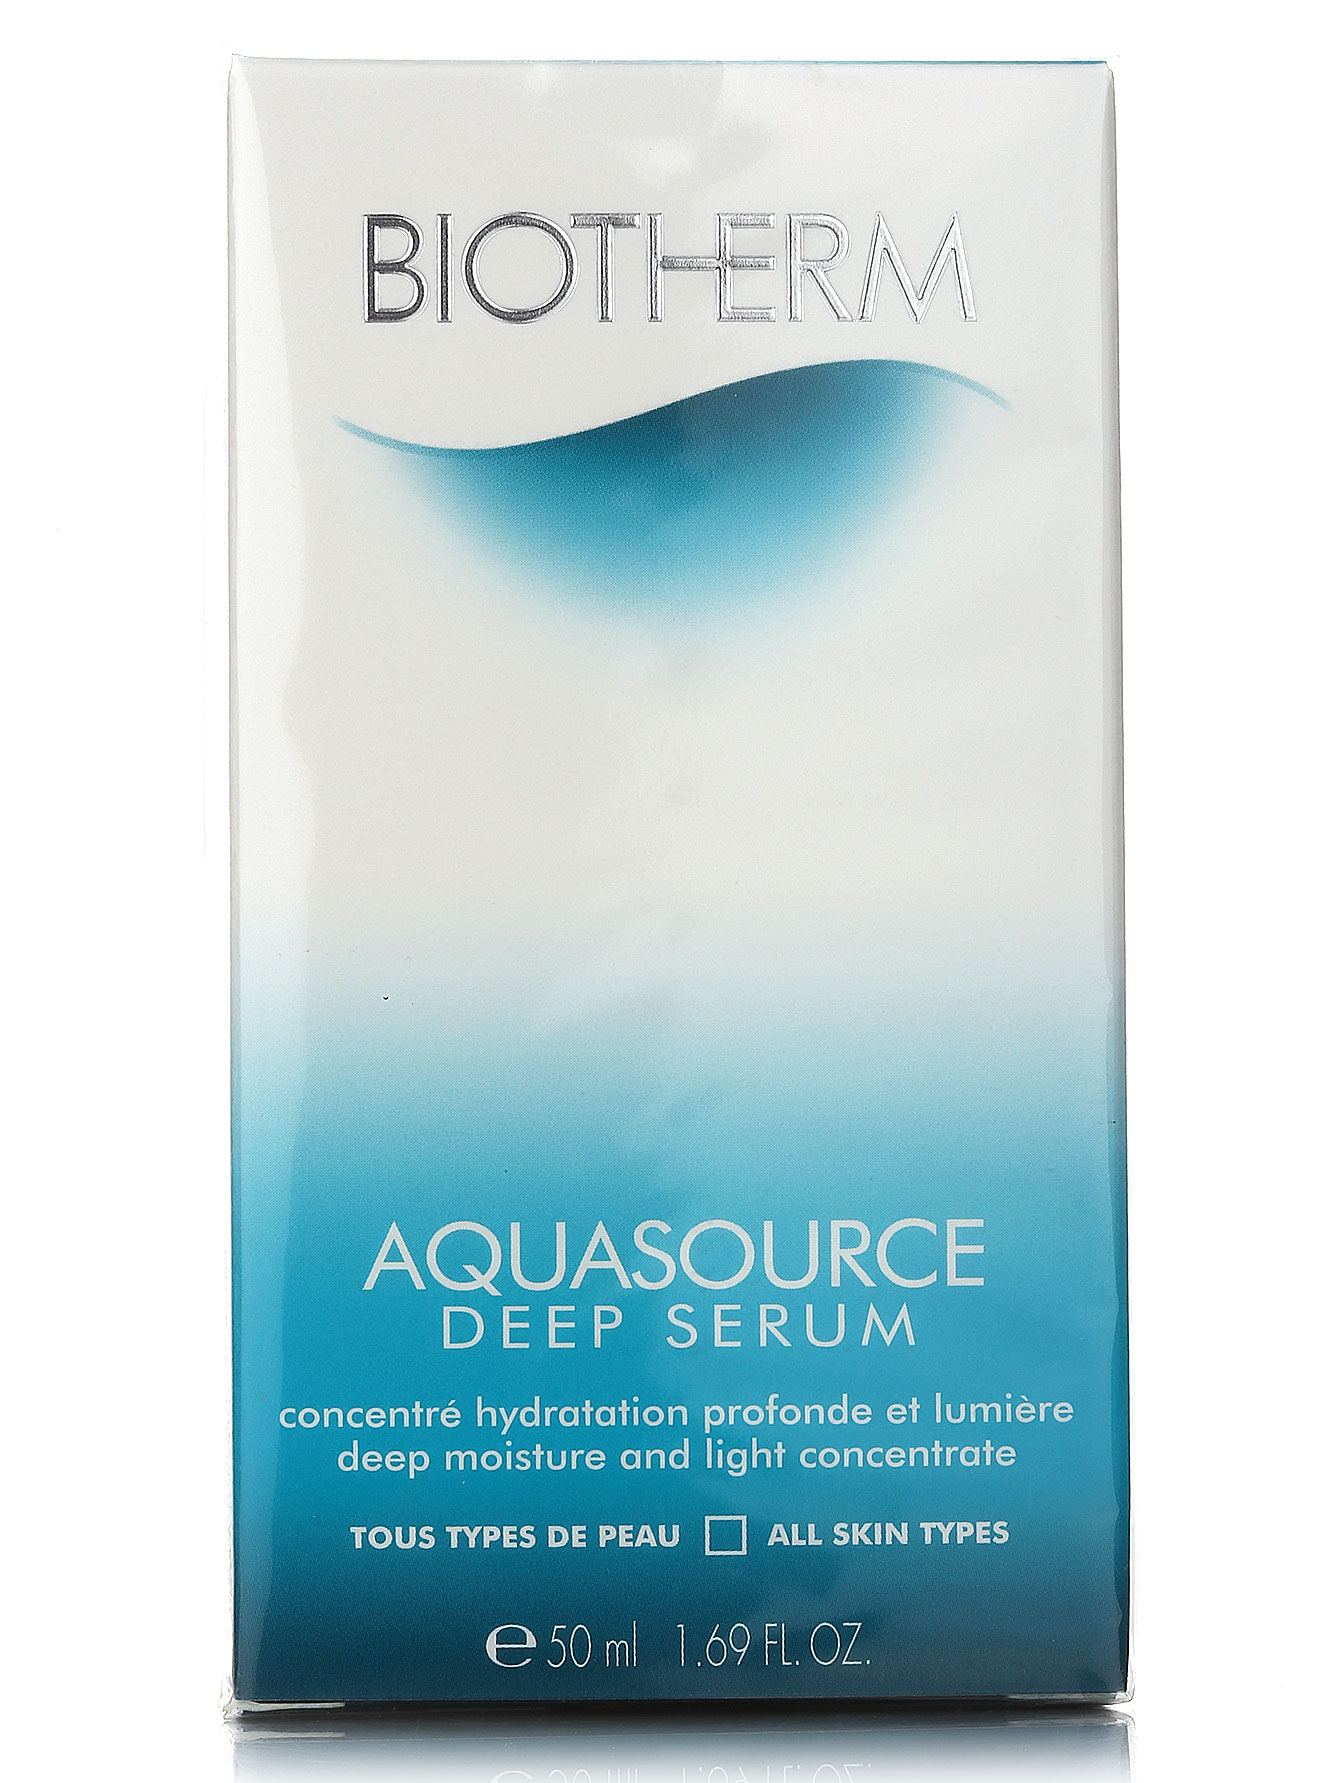 Aquasourse Deep Serum